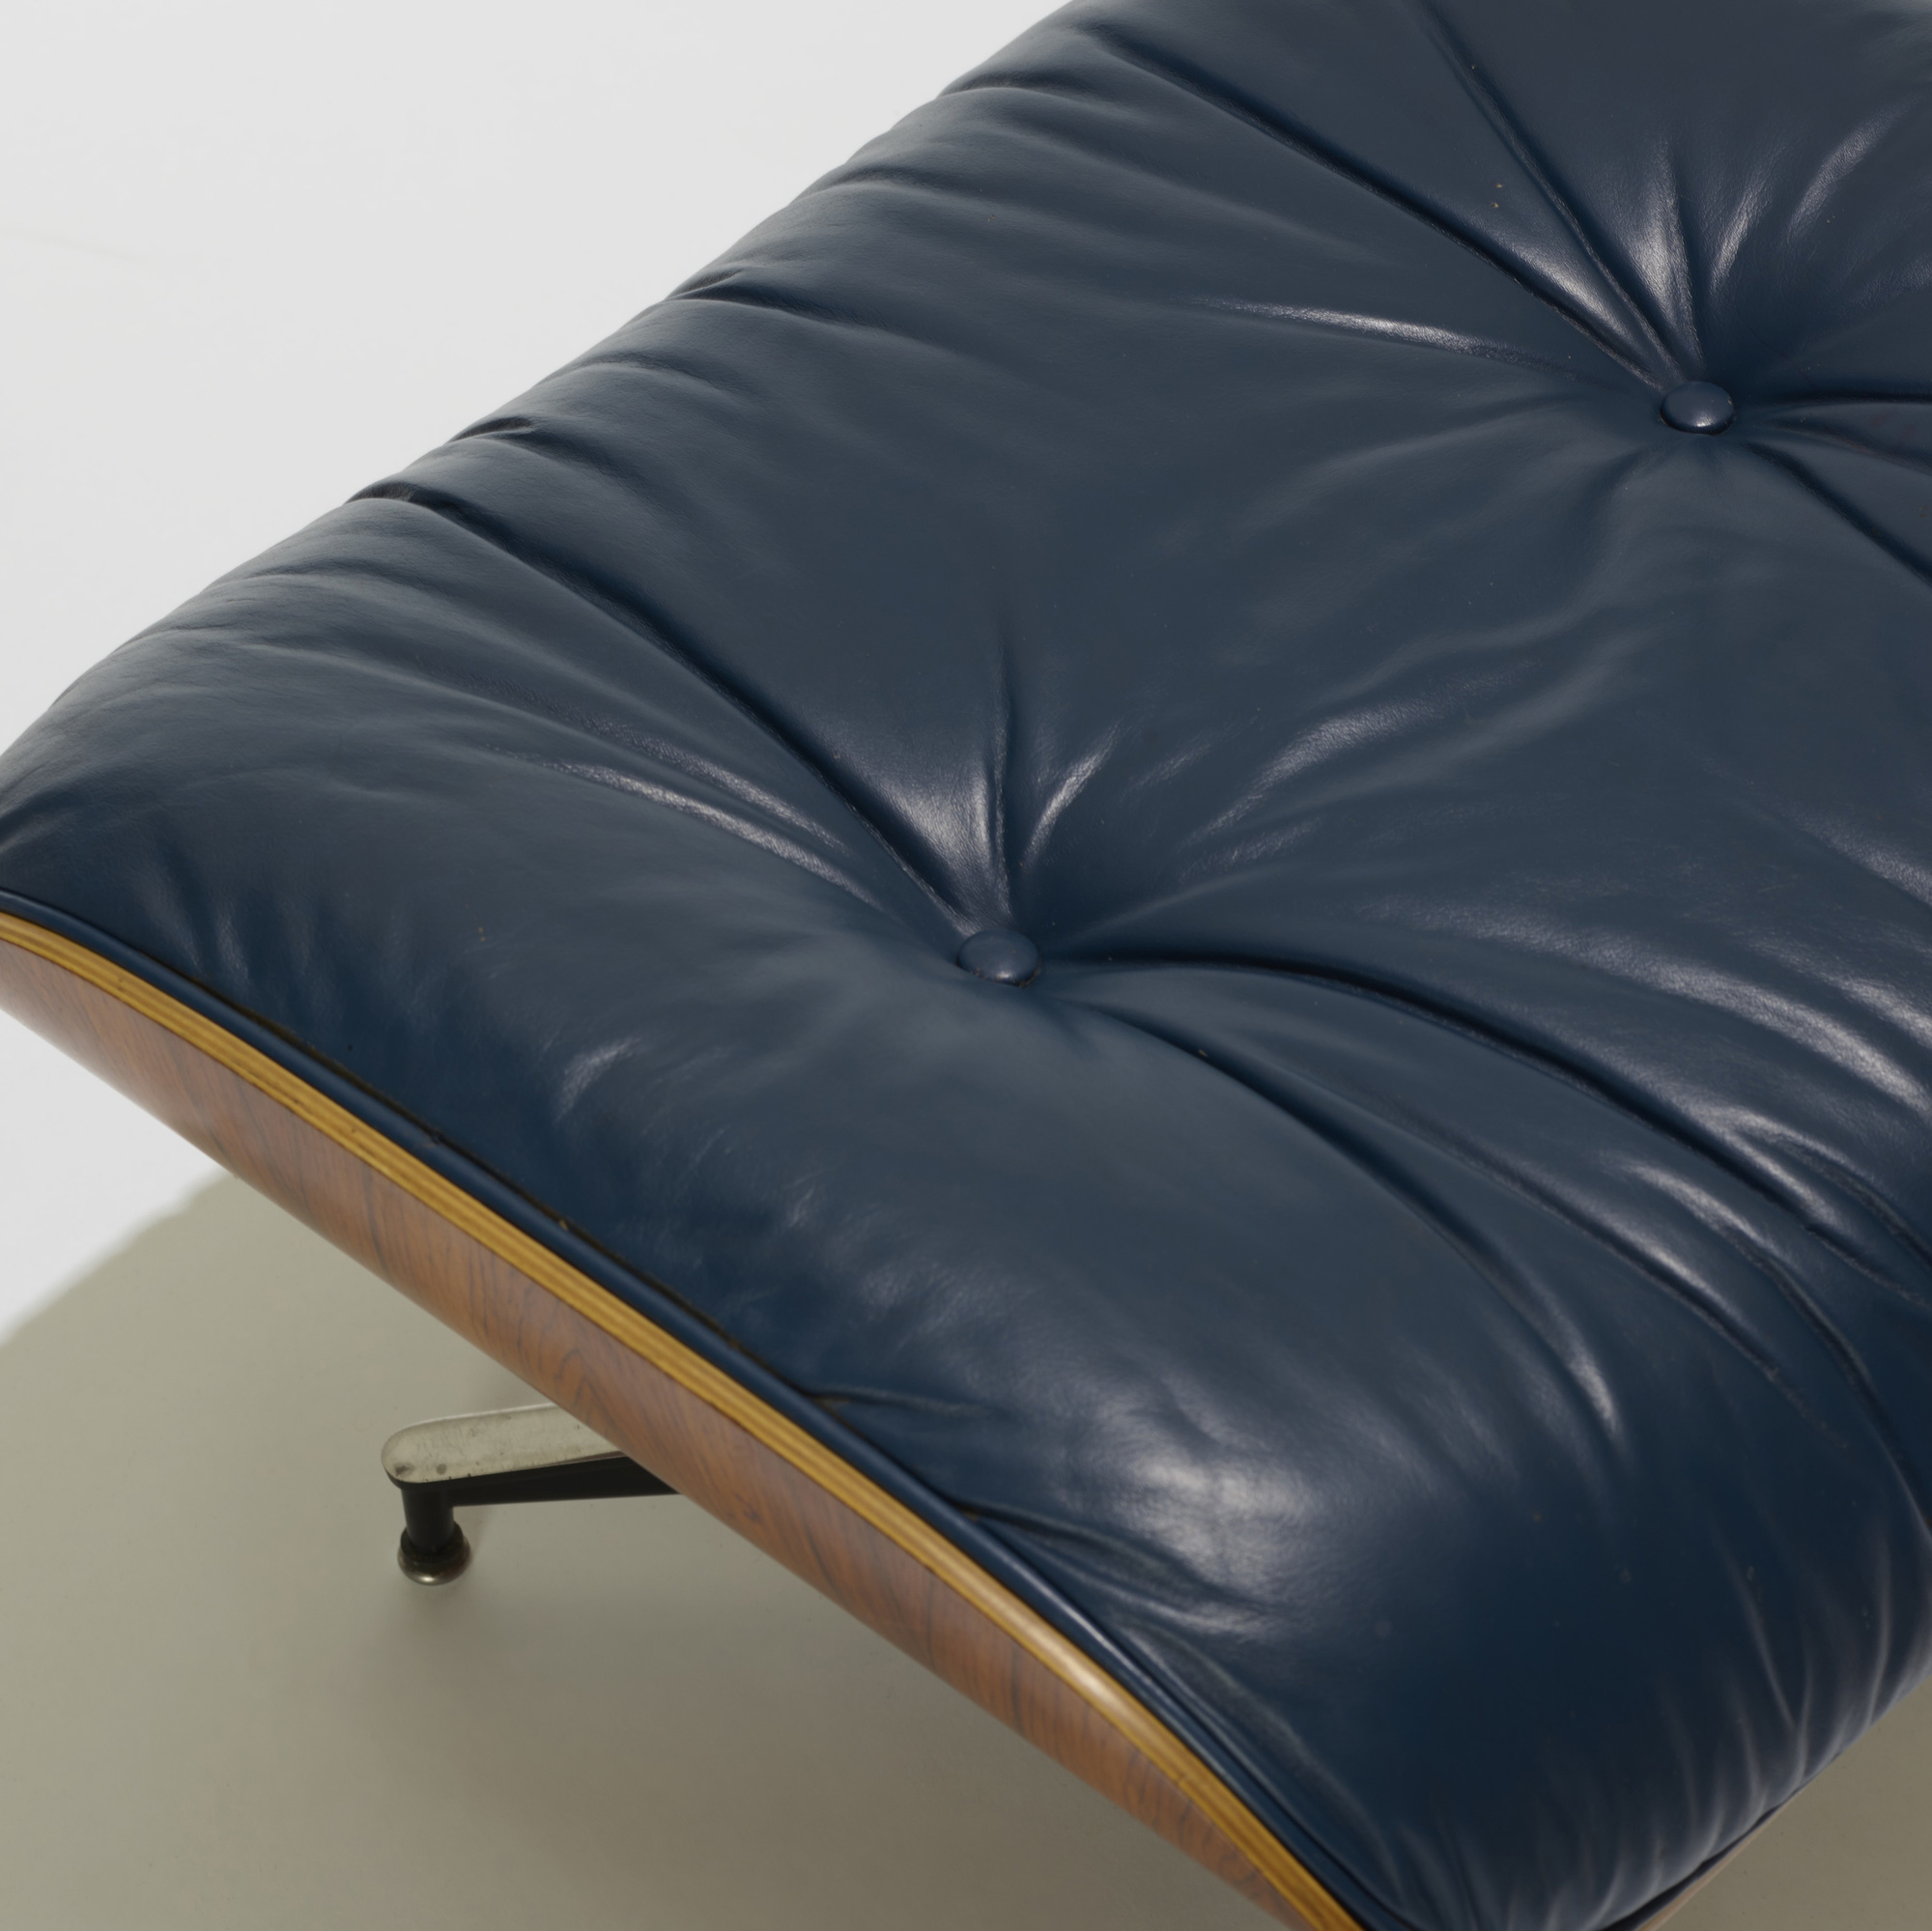 103: Charles and Ray Eames / special-order 670 lounge chair and 671 ottoman (3 of 4)